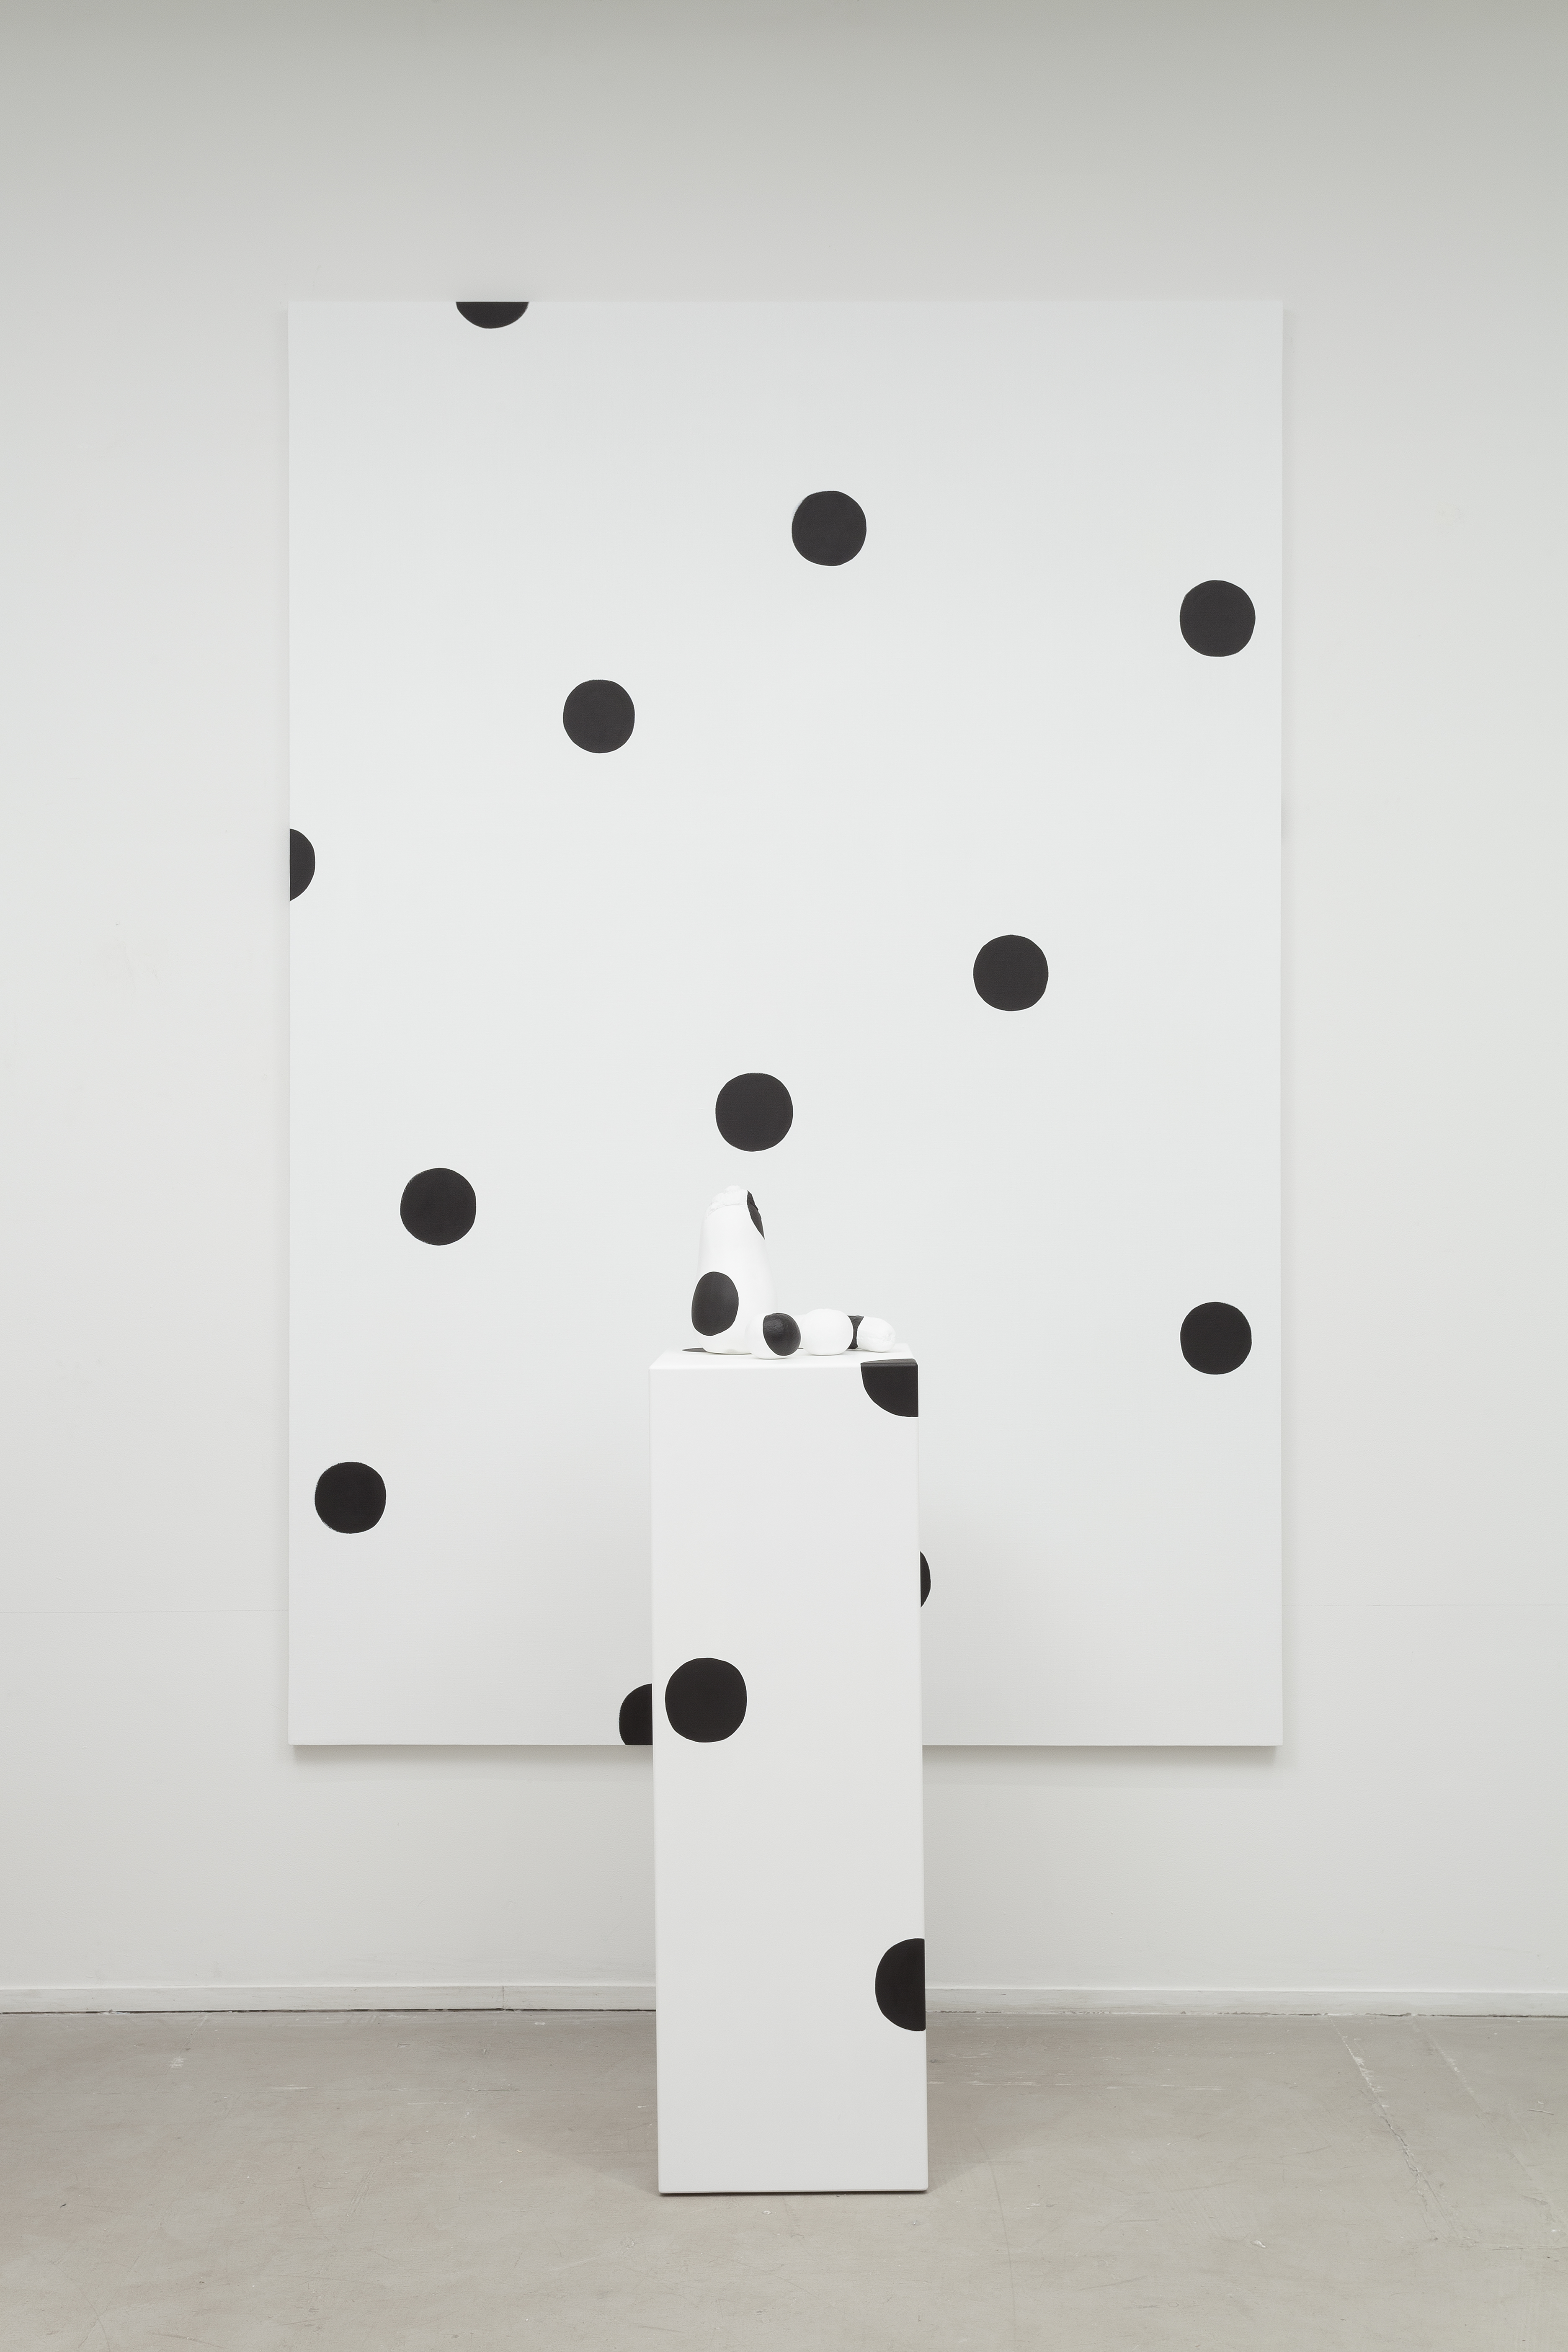 Margaret Lee, Dots!, 2013, oil on linen, oil on plaster, oil on wood, 72 x 96 x 21 inches